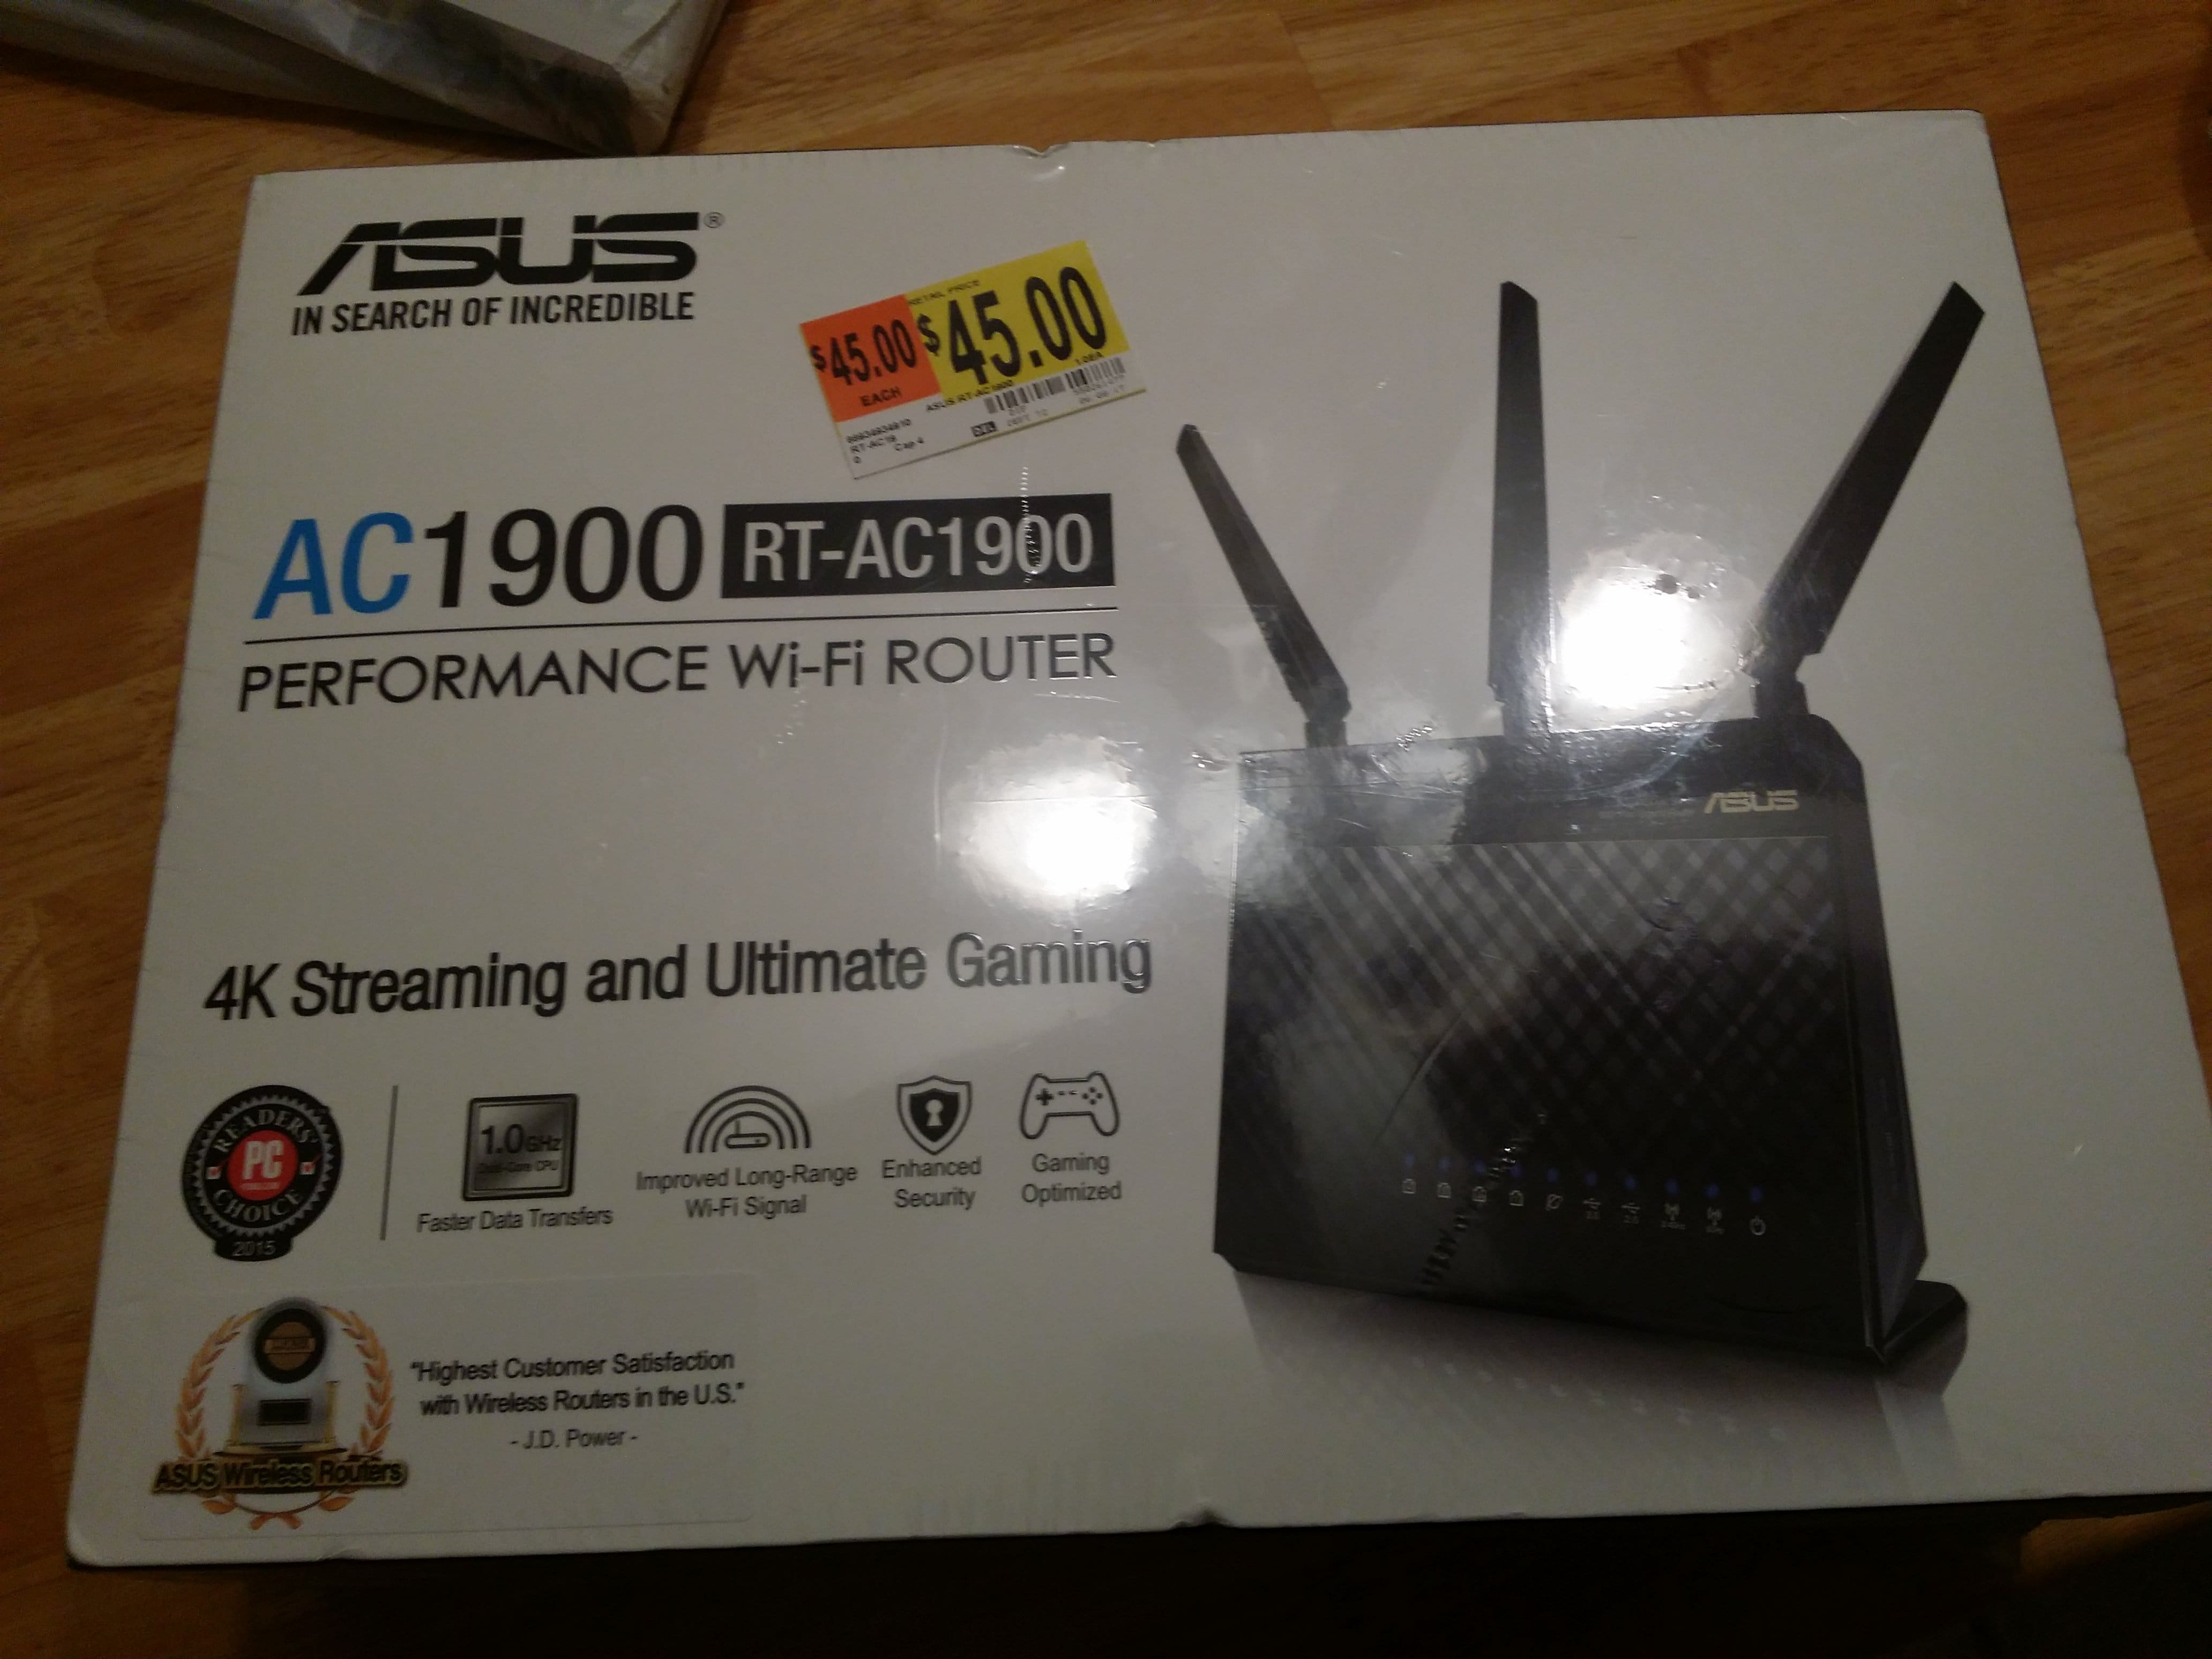 Asus RT-AC1900 Router for $45 B&M YMMV